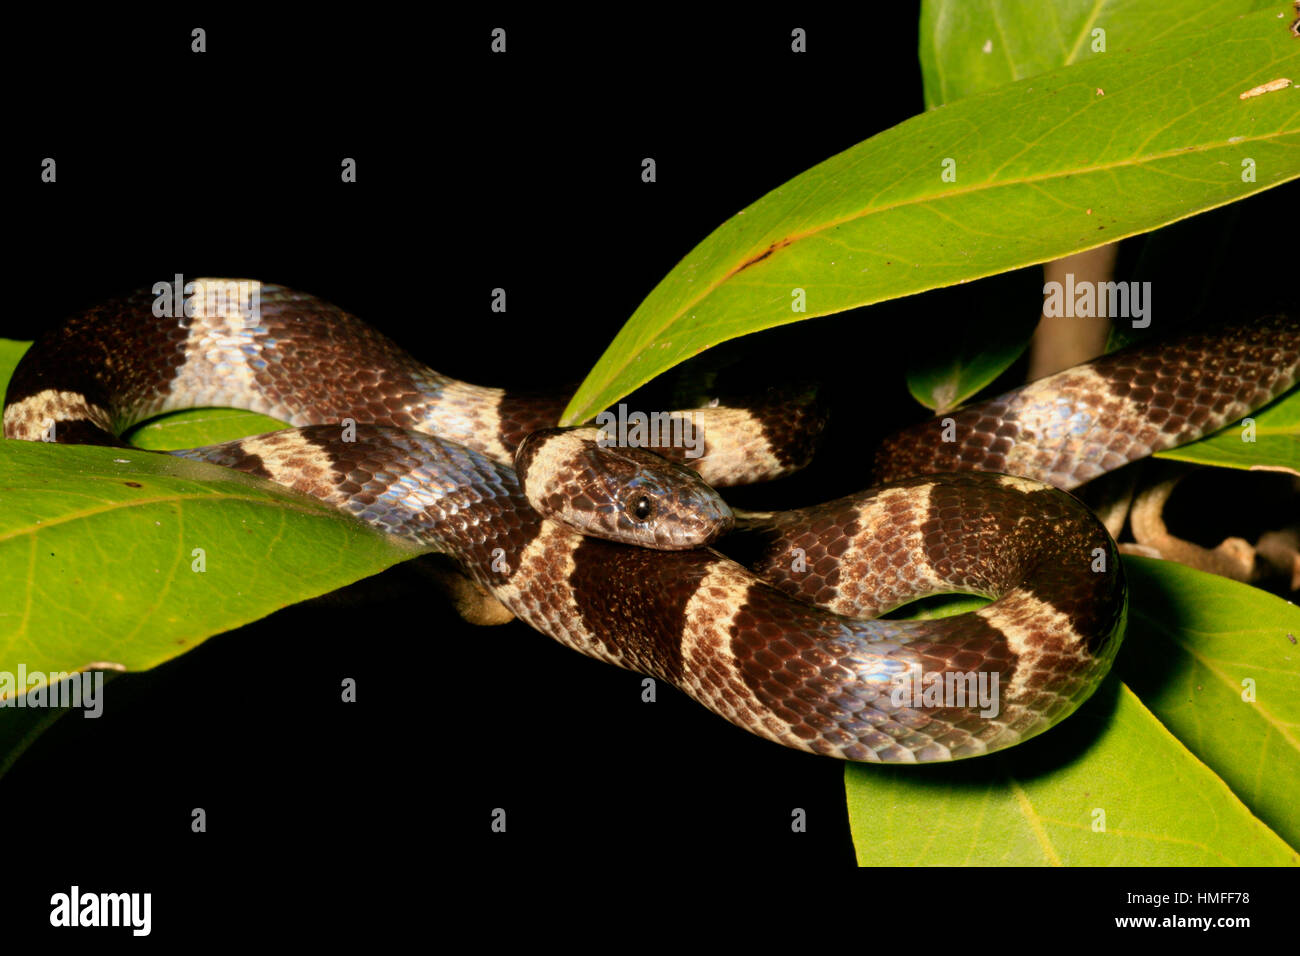 Black and White Cat-eyed Snake (Leptodeira nigrofasciata), Palo Verde National Park, Costa Rica - Stock Image